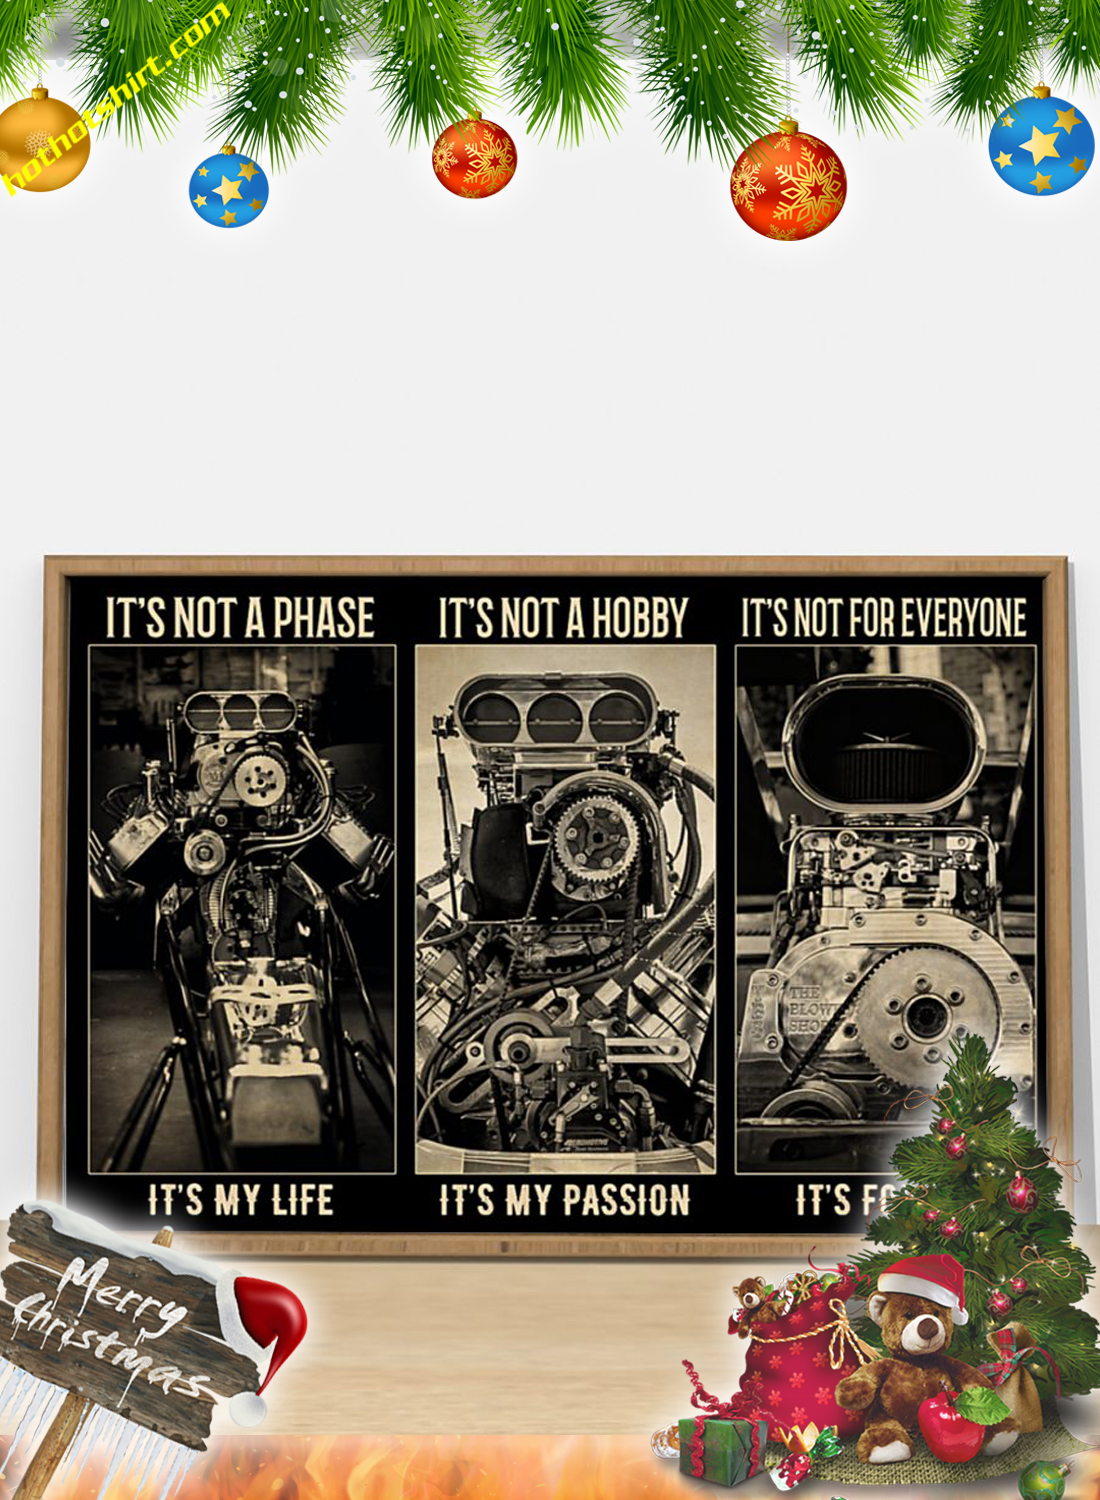 BW engine It's not a phase poster 2